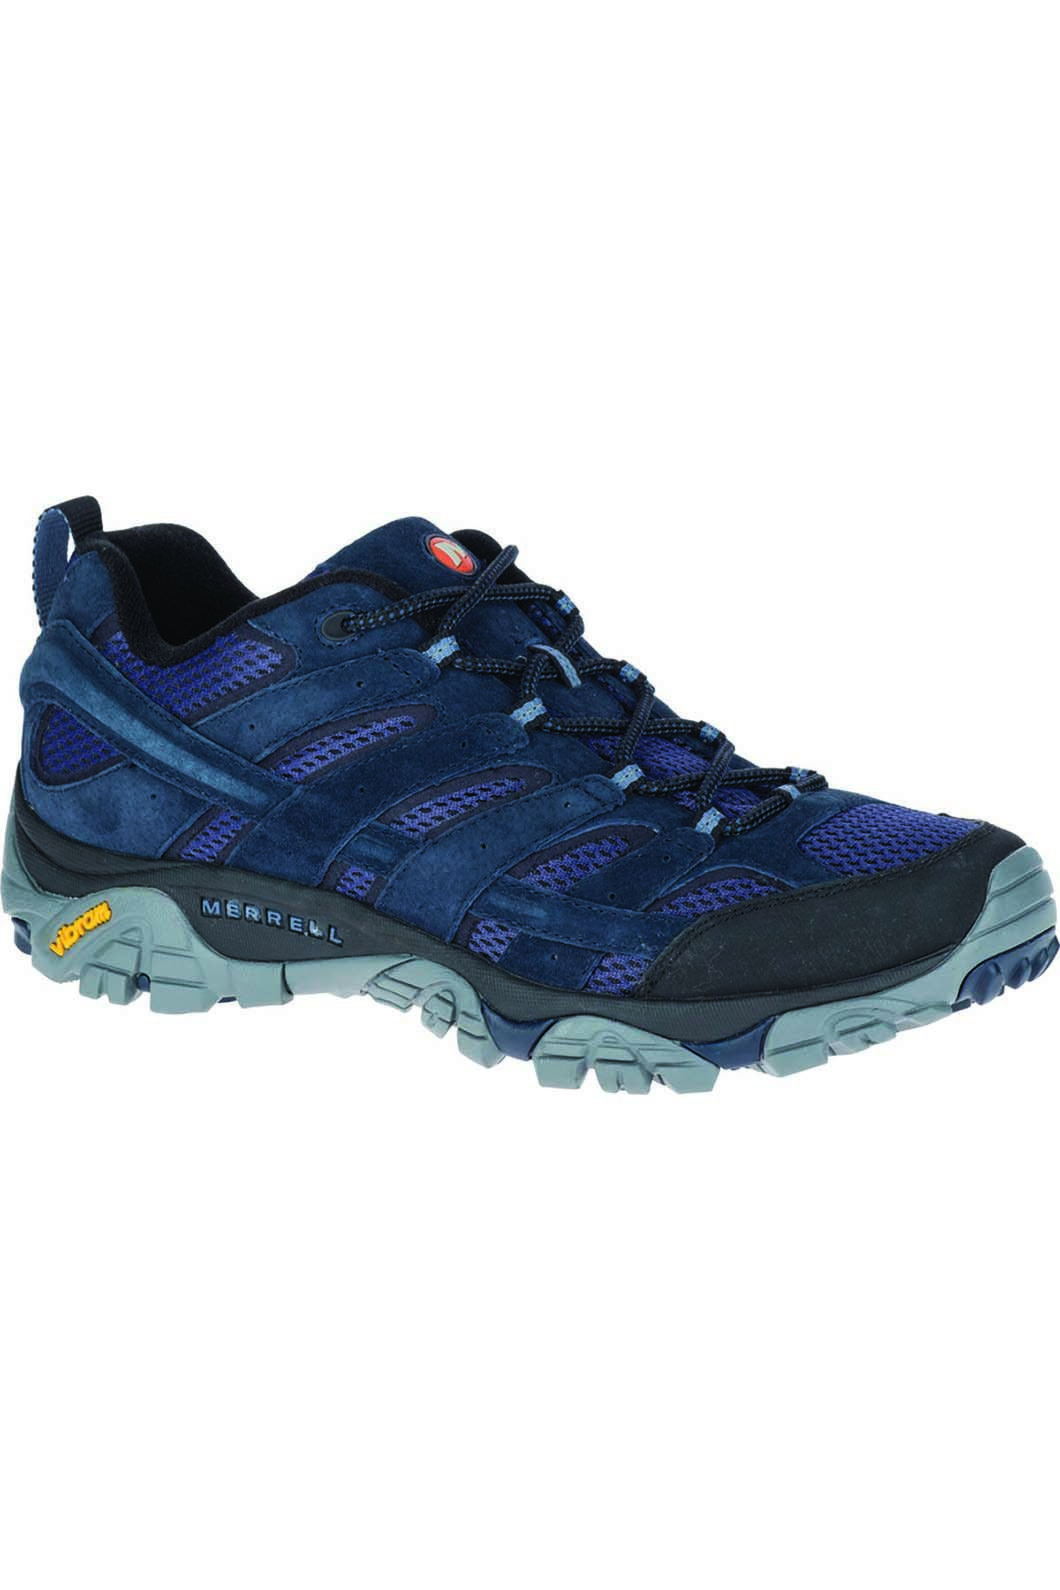 Merrell Men's Moab 2 Ventilator Hiking Shoe, Navy, hi-res